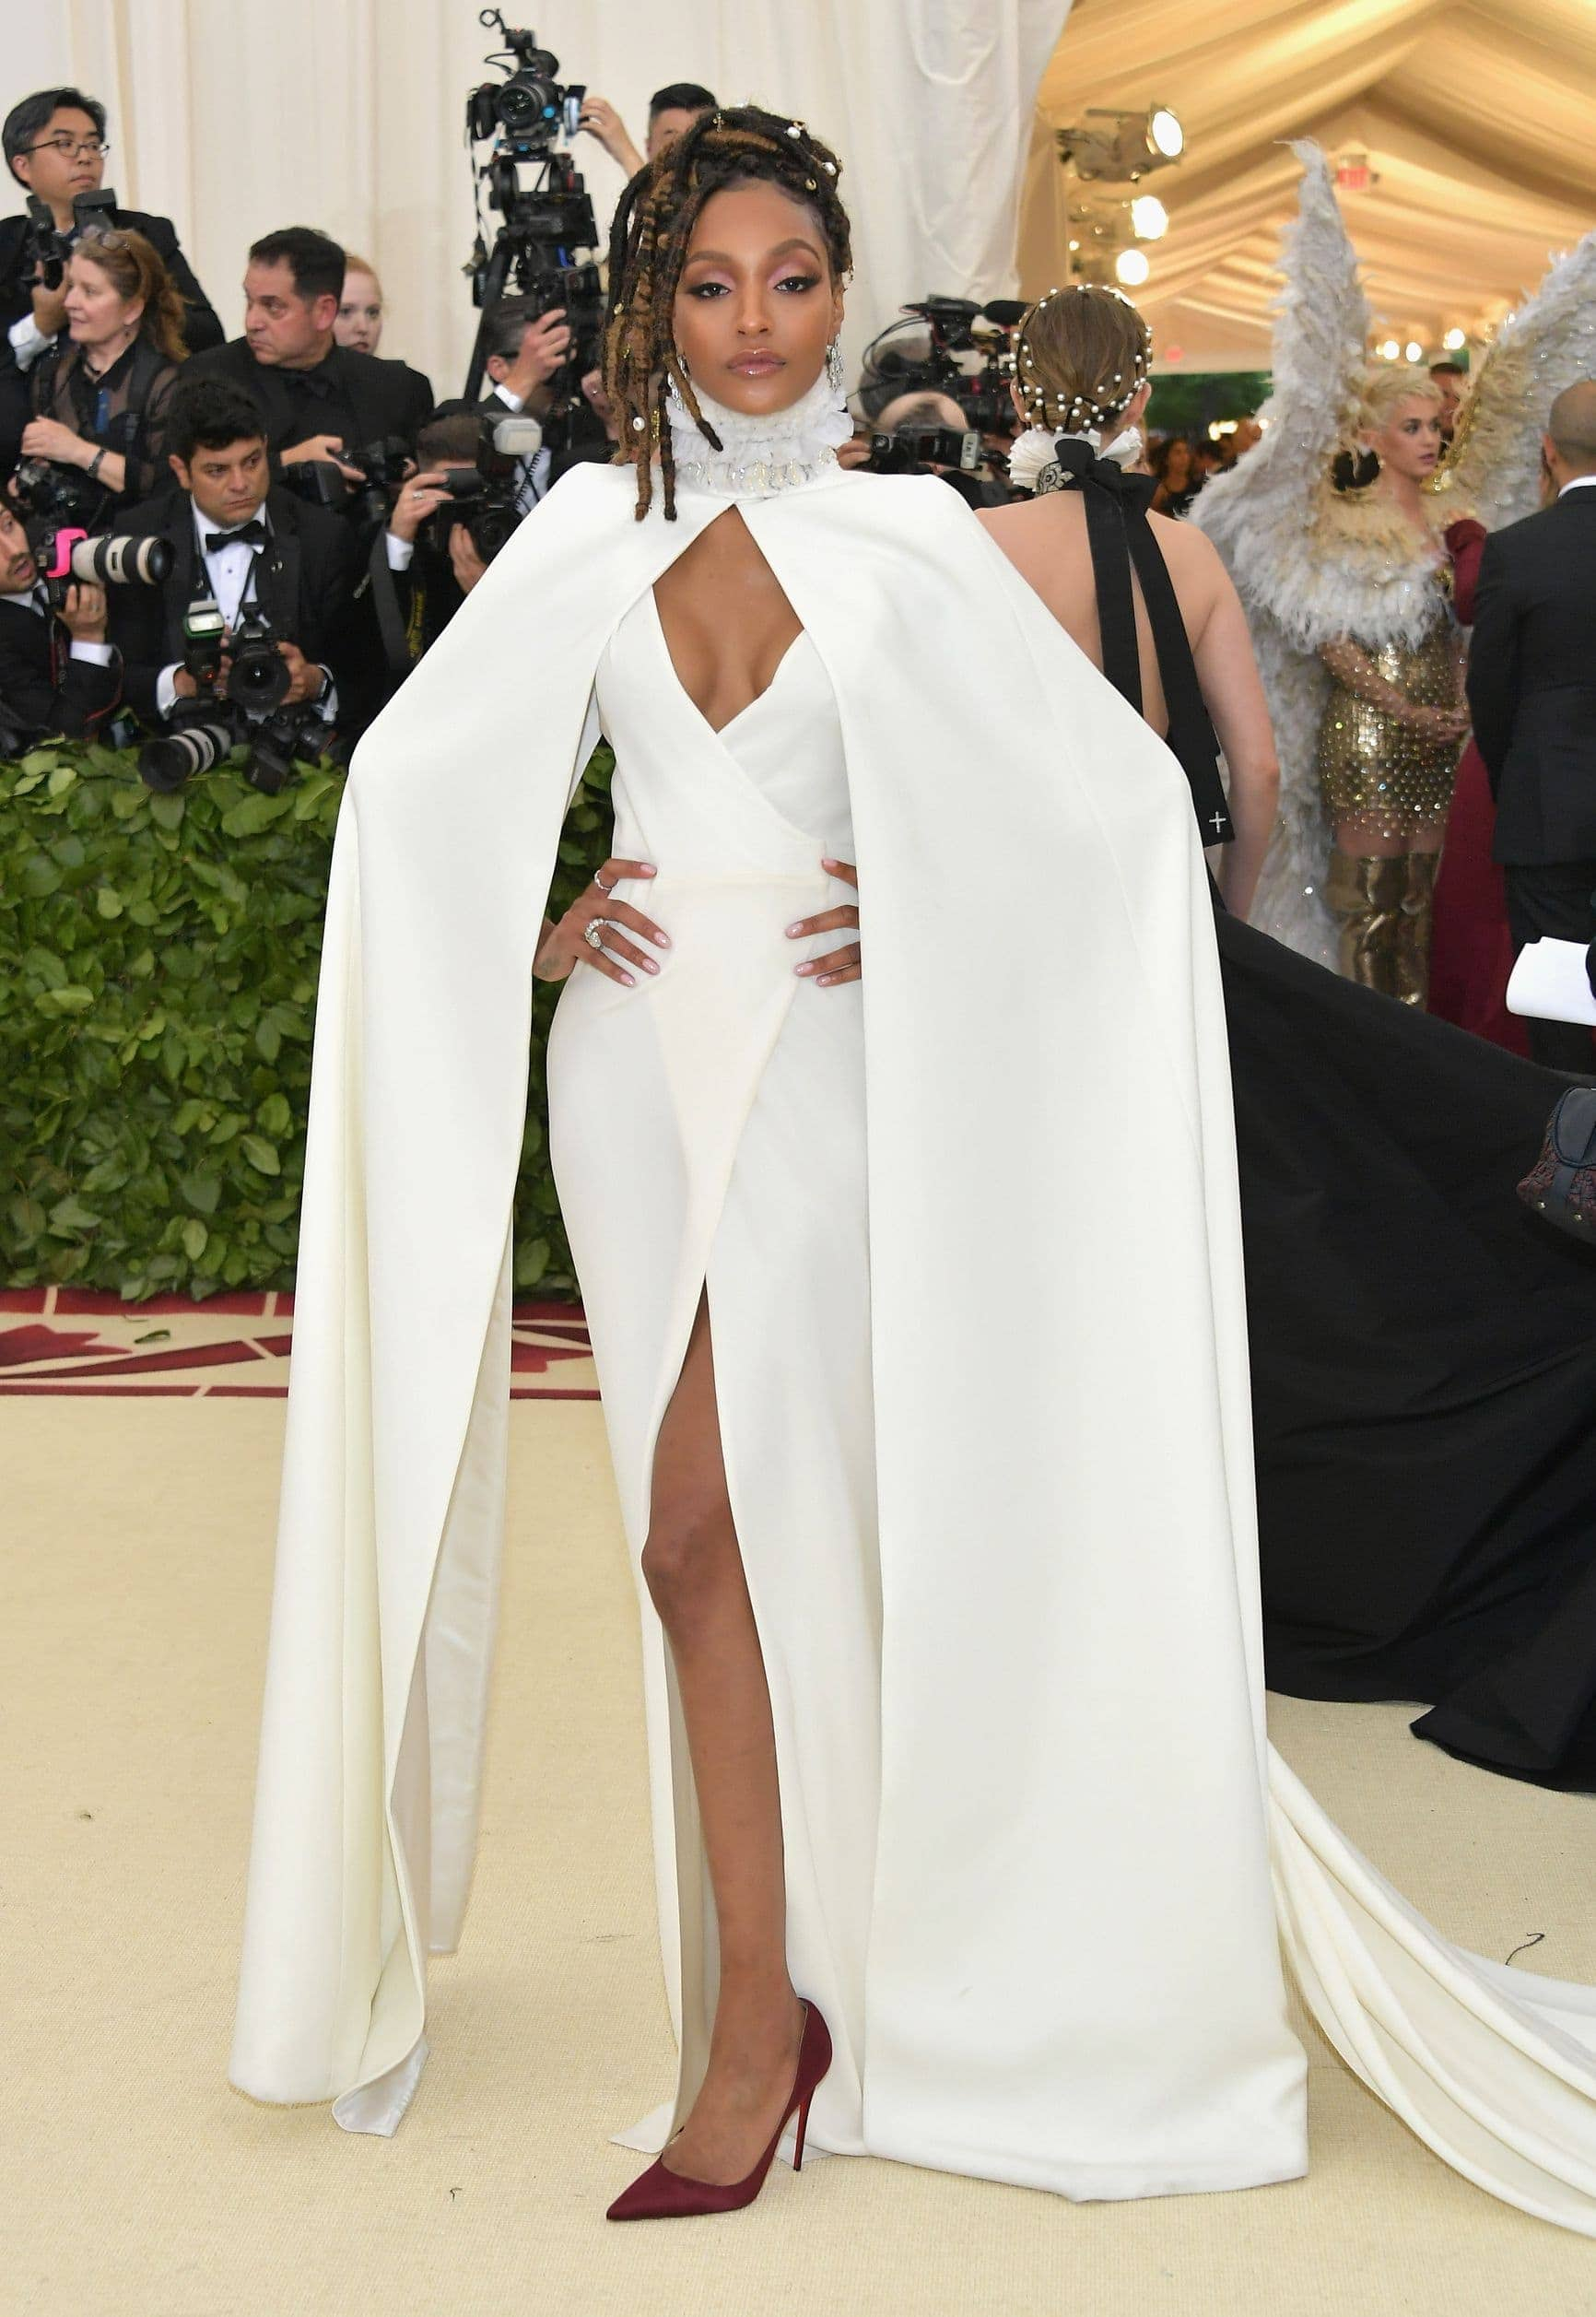 Fashion, Fashionblog, Fashion Magazine, Editorial, Style, Style Guide, Style Inspiration, Met Gala, New York, Fashion, Fashion World, Fashion Event, Glamour, Red Carpet, Celebrities, Gowns, Trends, Dresses, Princess Mood, Metallic, Silhouettes, Met Gala 2018, White